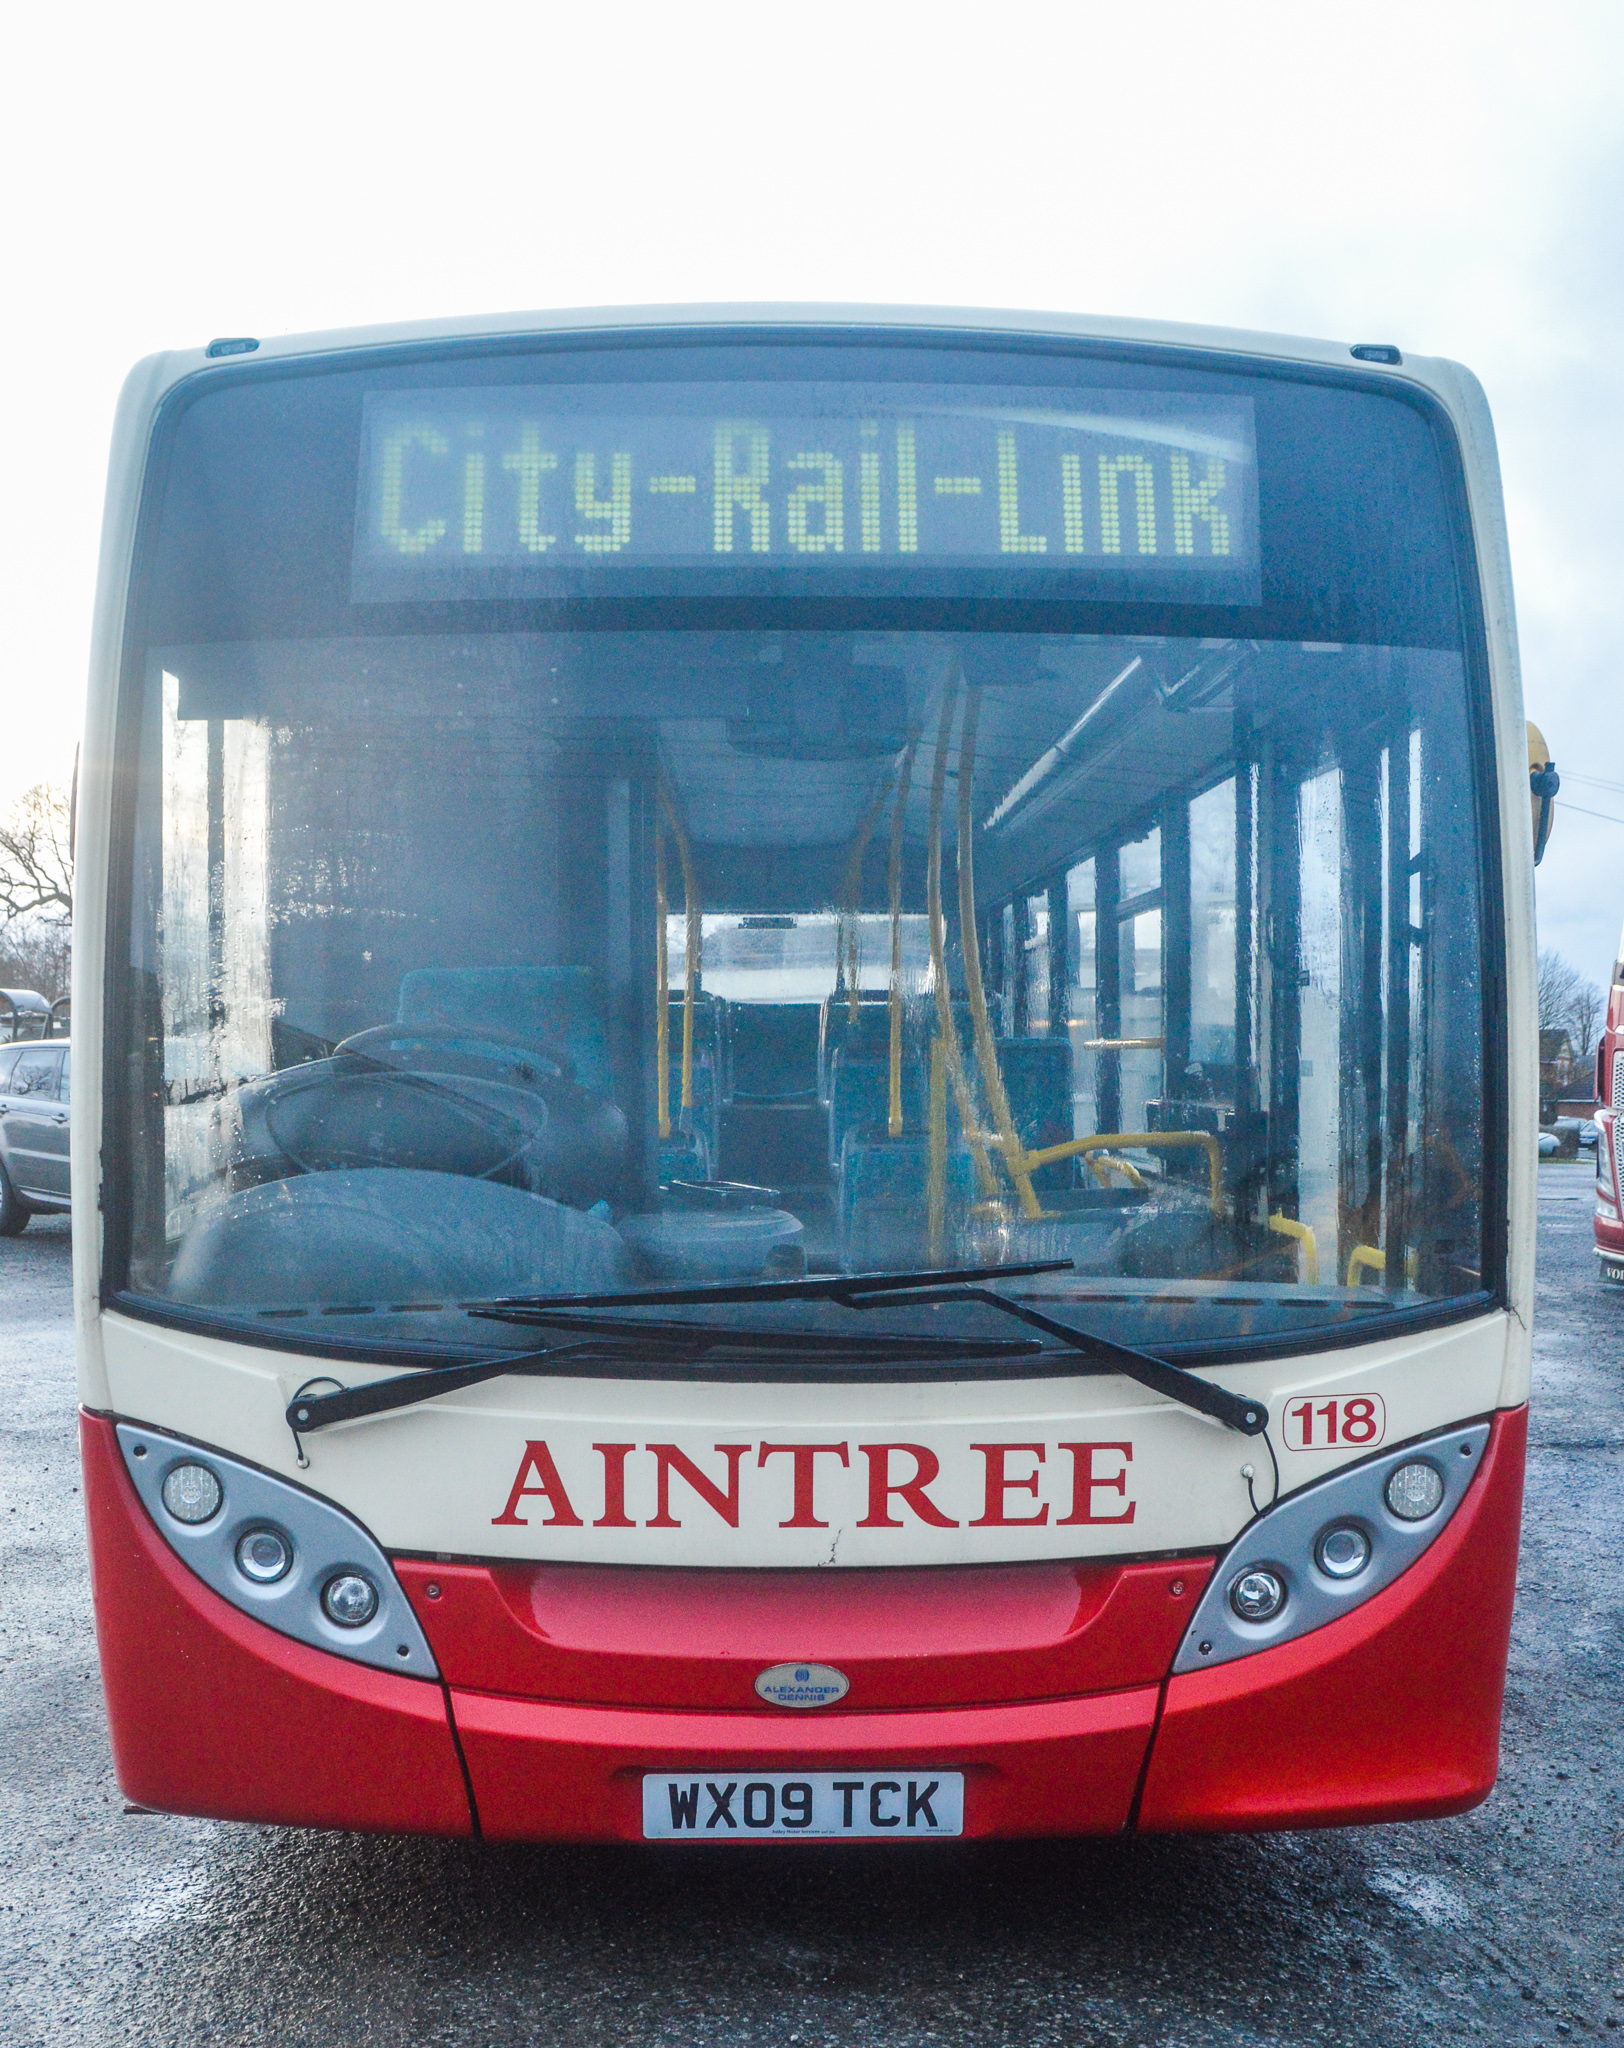 Lot 3 - Alexander Dennis Dart 4 Enviro 2000 29 seat single deck service bus Registration Number: WX09 TCK